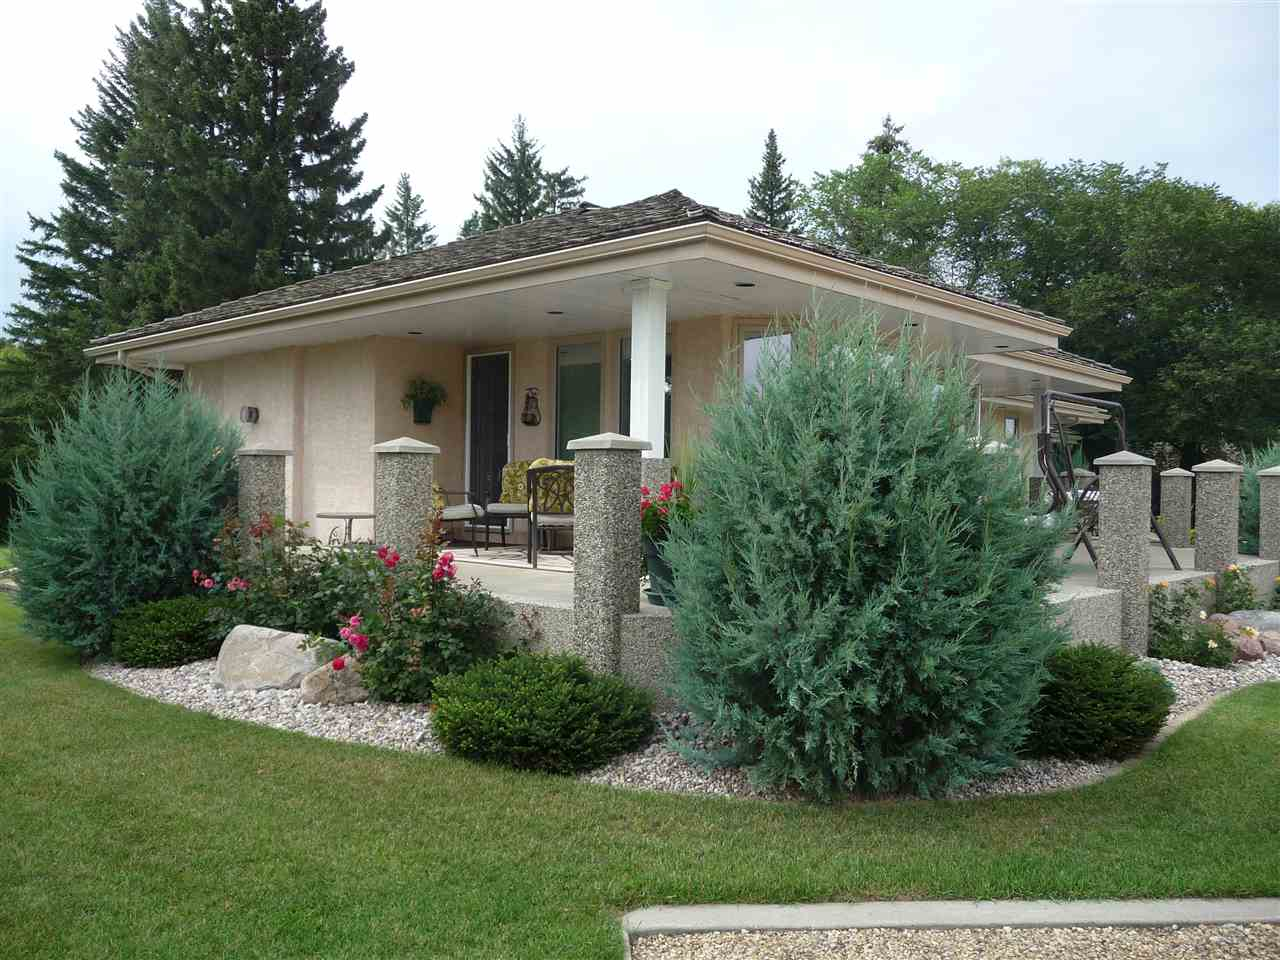 Photo 13: 54527 RGE RD 243: Rural Sturgeon County House for sale : MLS(r) # E4033494